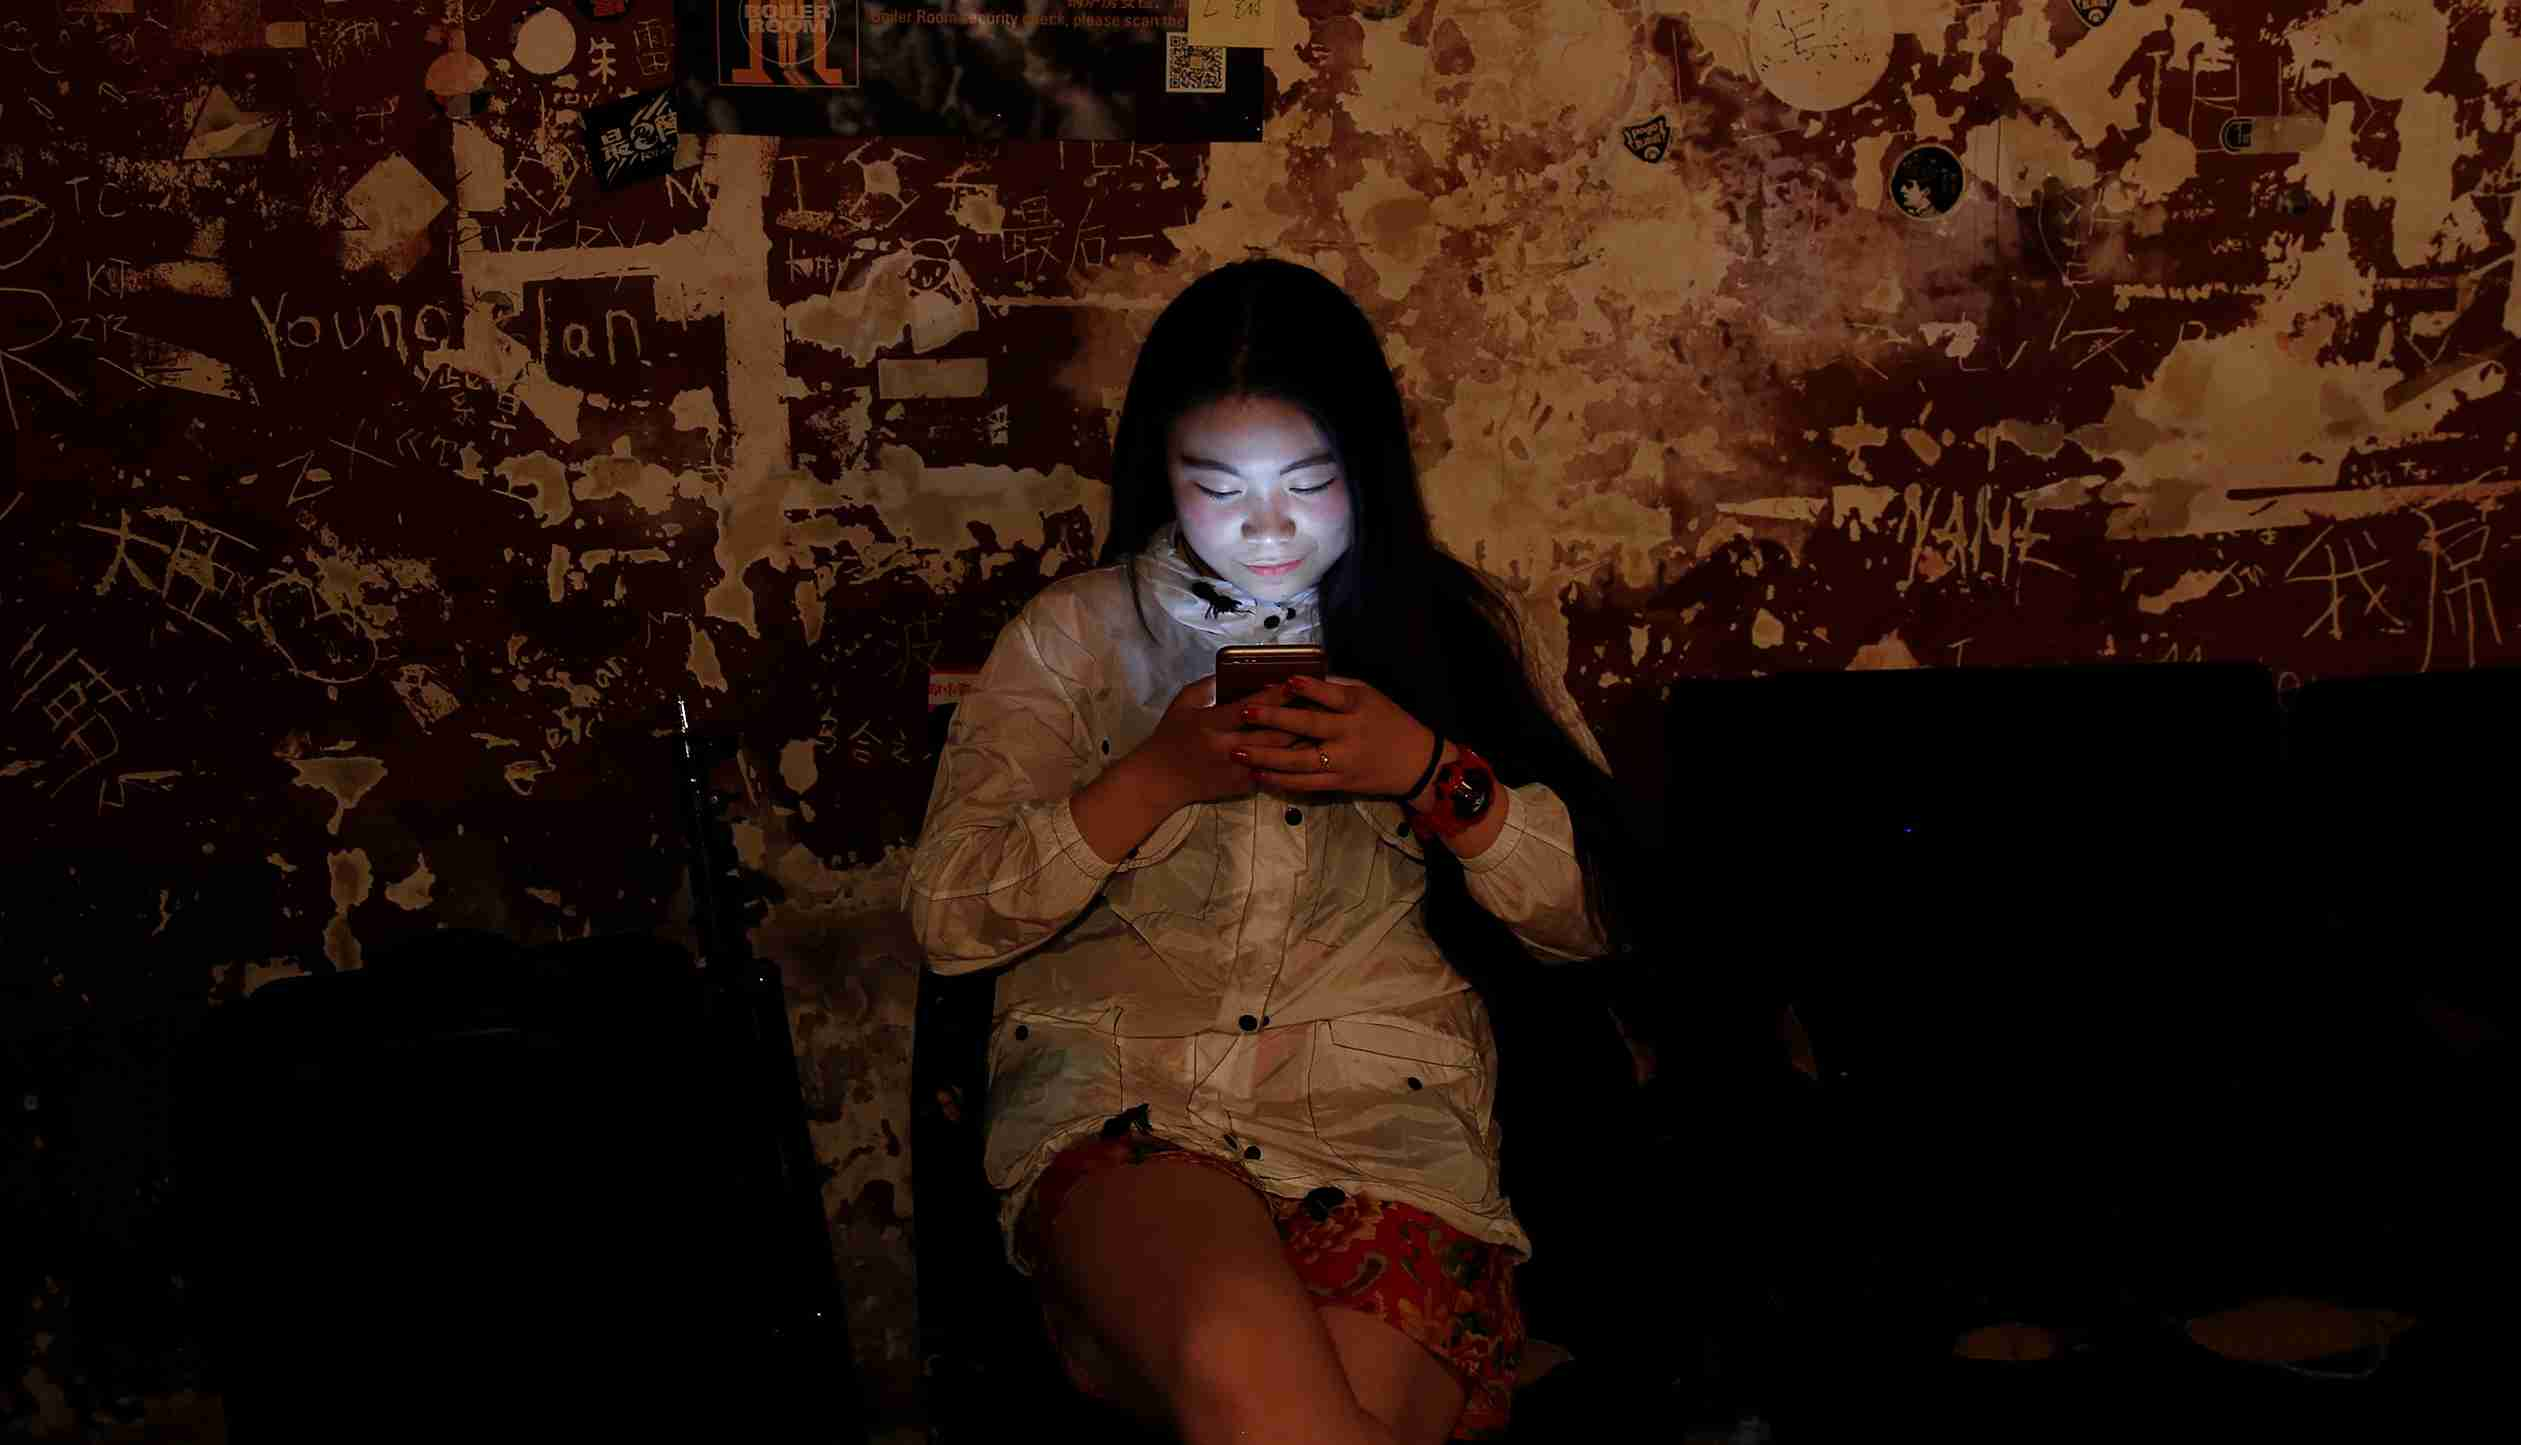 "A girl uses her phone at Mao Live House during its last public concert night in central Beijing, China April 24, 2016. Mao Live House, a prominent live rock music venue in Beijing, shut its doors on the weekend, the latest closure to hit China's rock music scene. Owner Li Chi said the club, popular among fans of punk, metal and alternative rock since it opened nine years ago, was forced to close due to tighter rules on live performances. REUTERS/Damir Sagolj      SEARCH ""MAO LIVE"" FOR THIS STORY. SEARCH ""THE WIDER IMAGE"" FOR ALL STORIES  - S1BETBXEYAAB"